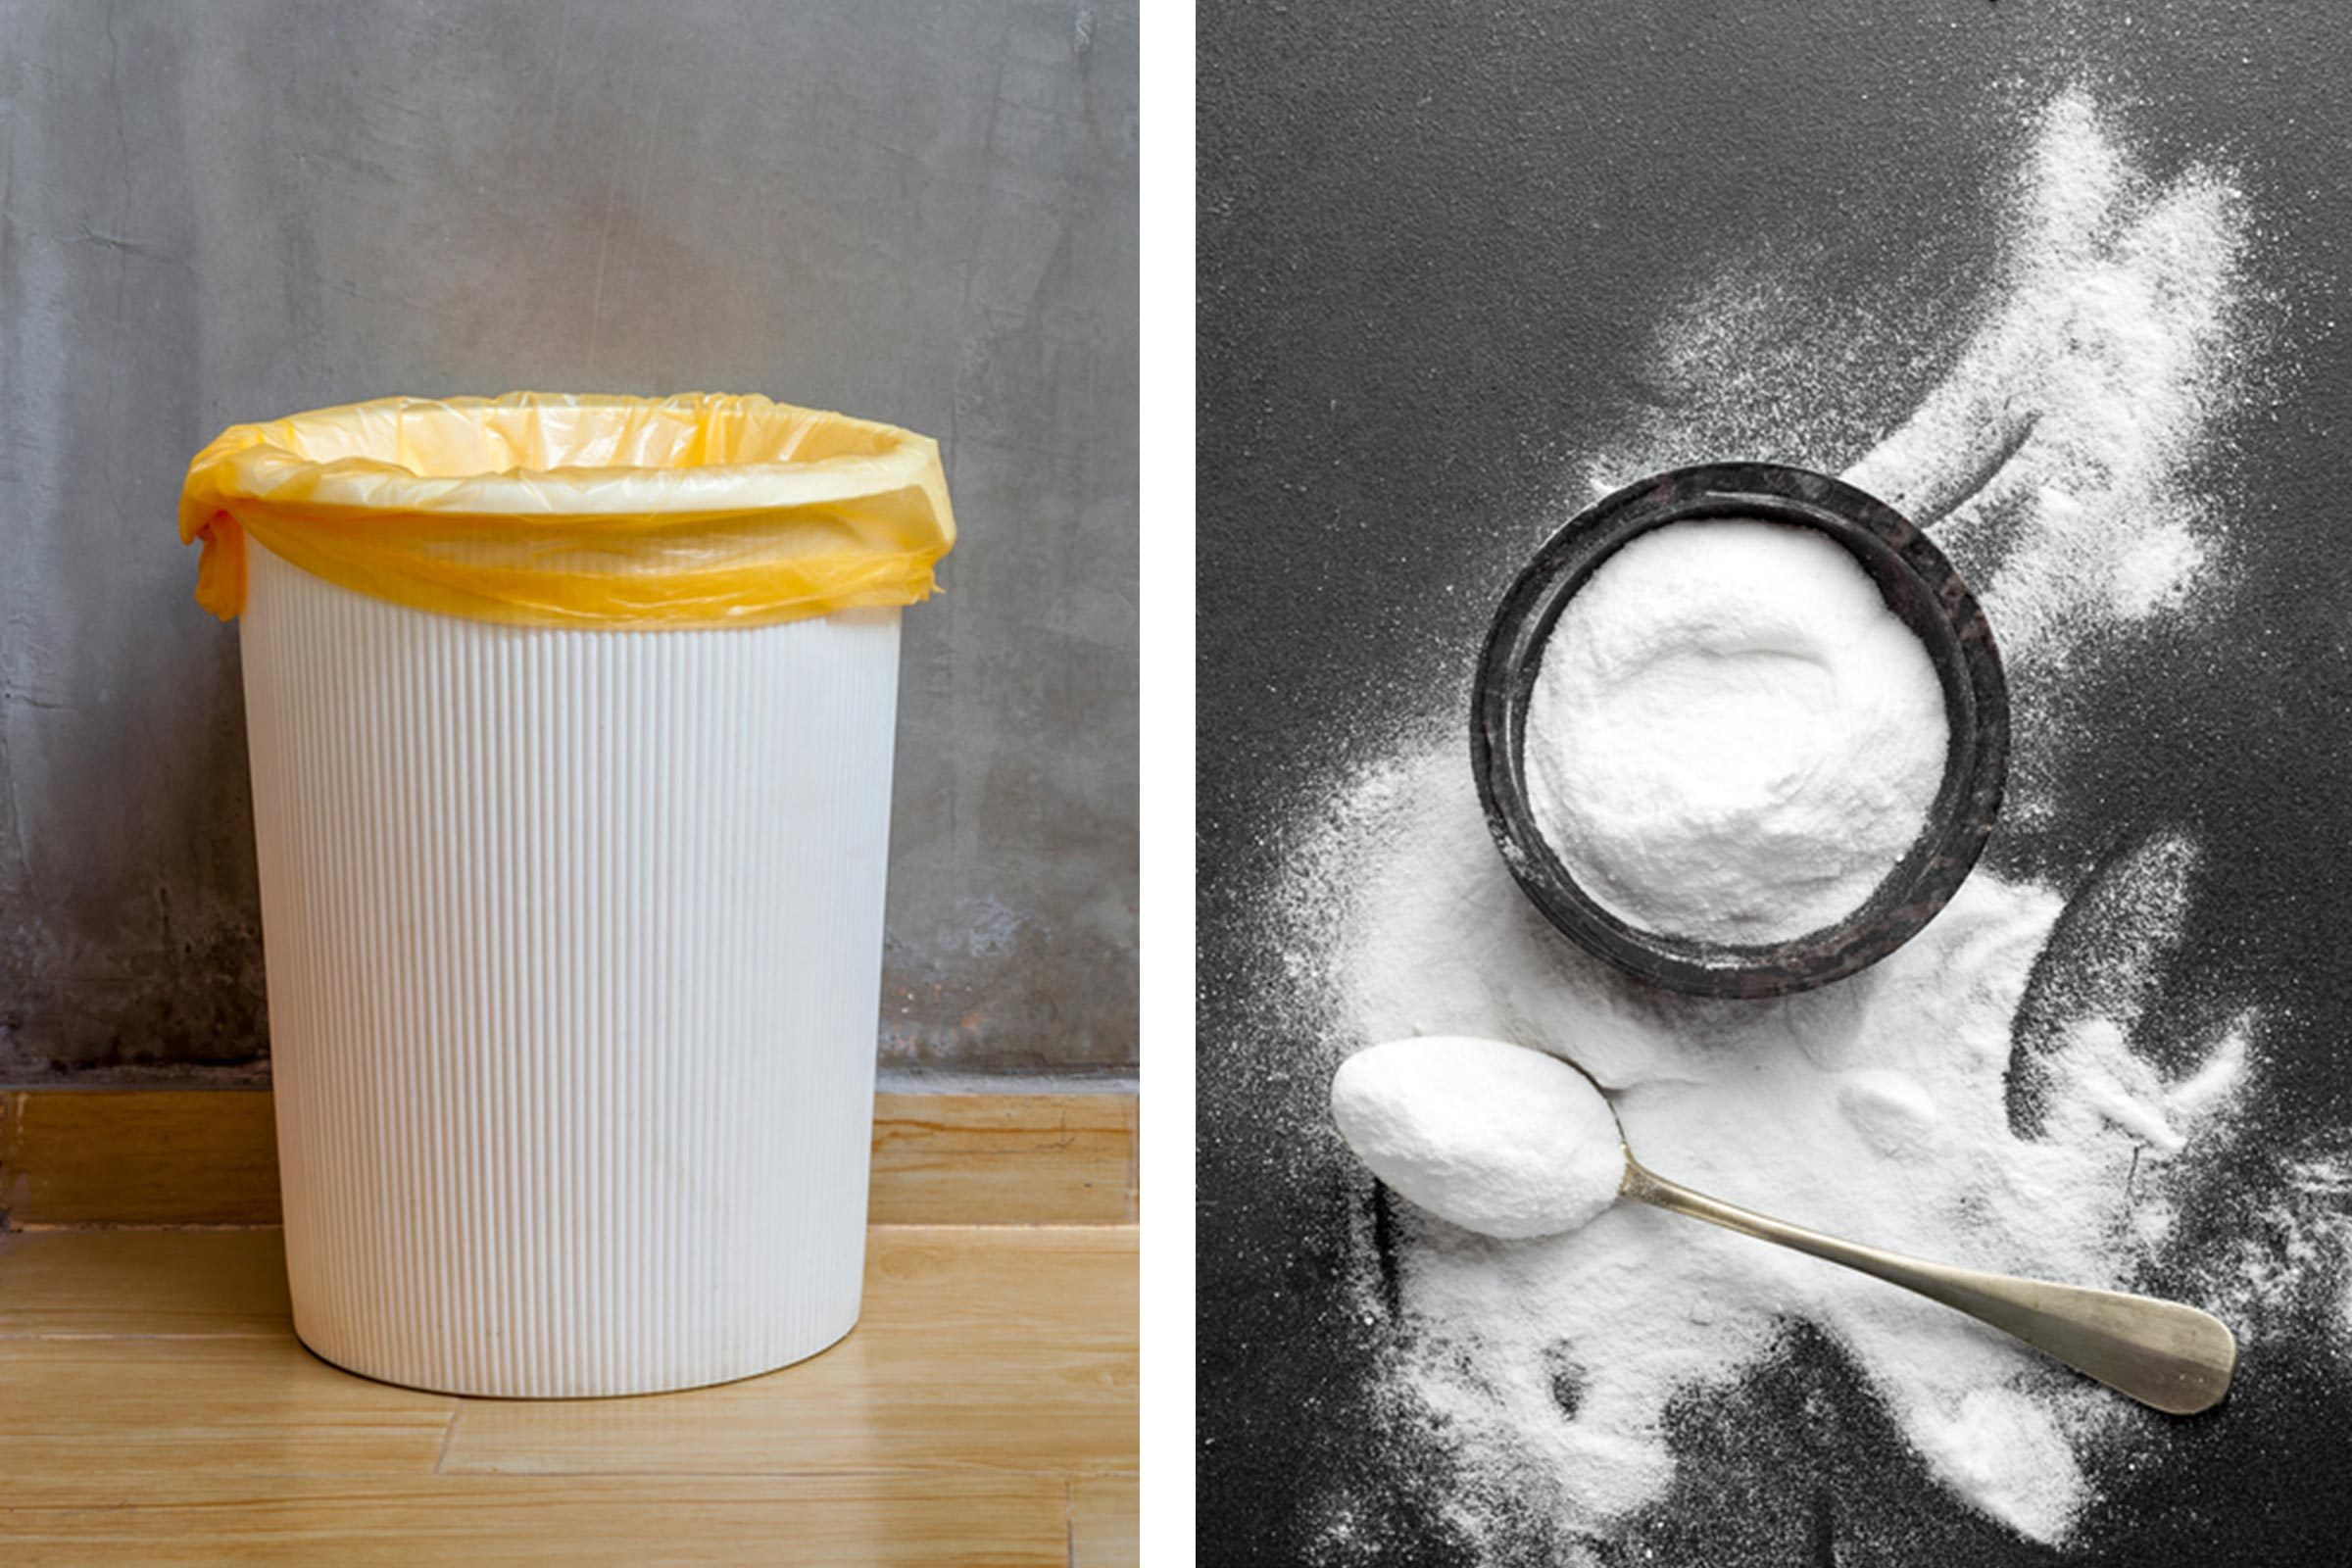 Slide 2 of 21: Keep your garbage can smelling fresh by sprinkling baking soda in the bottom each time you change out the bag. Baking soda is one of the most effective natural deodorizers out there and will prevent the area from smelling. Here are more brilliant uses for baking soda around your house.